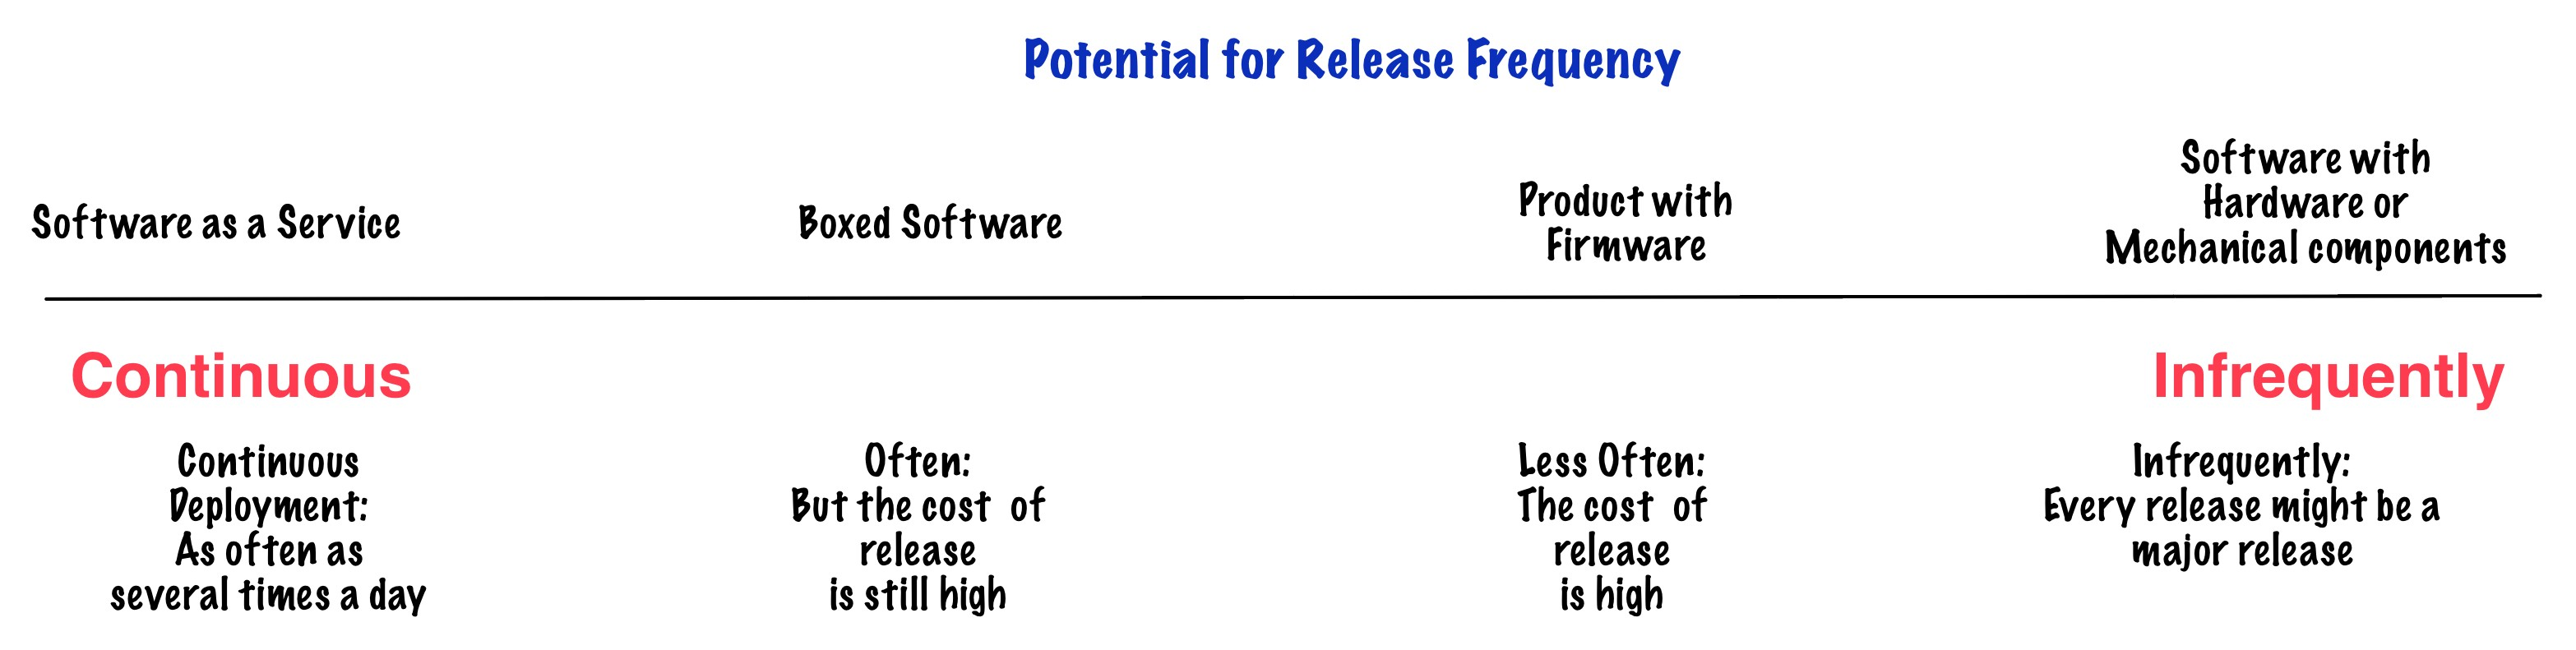 Potential for Release Frequency